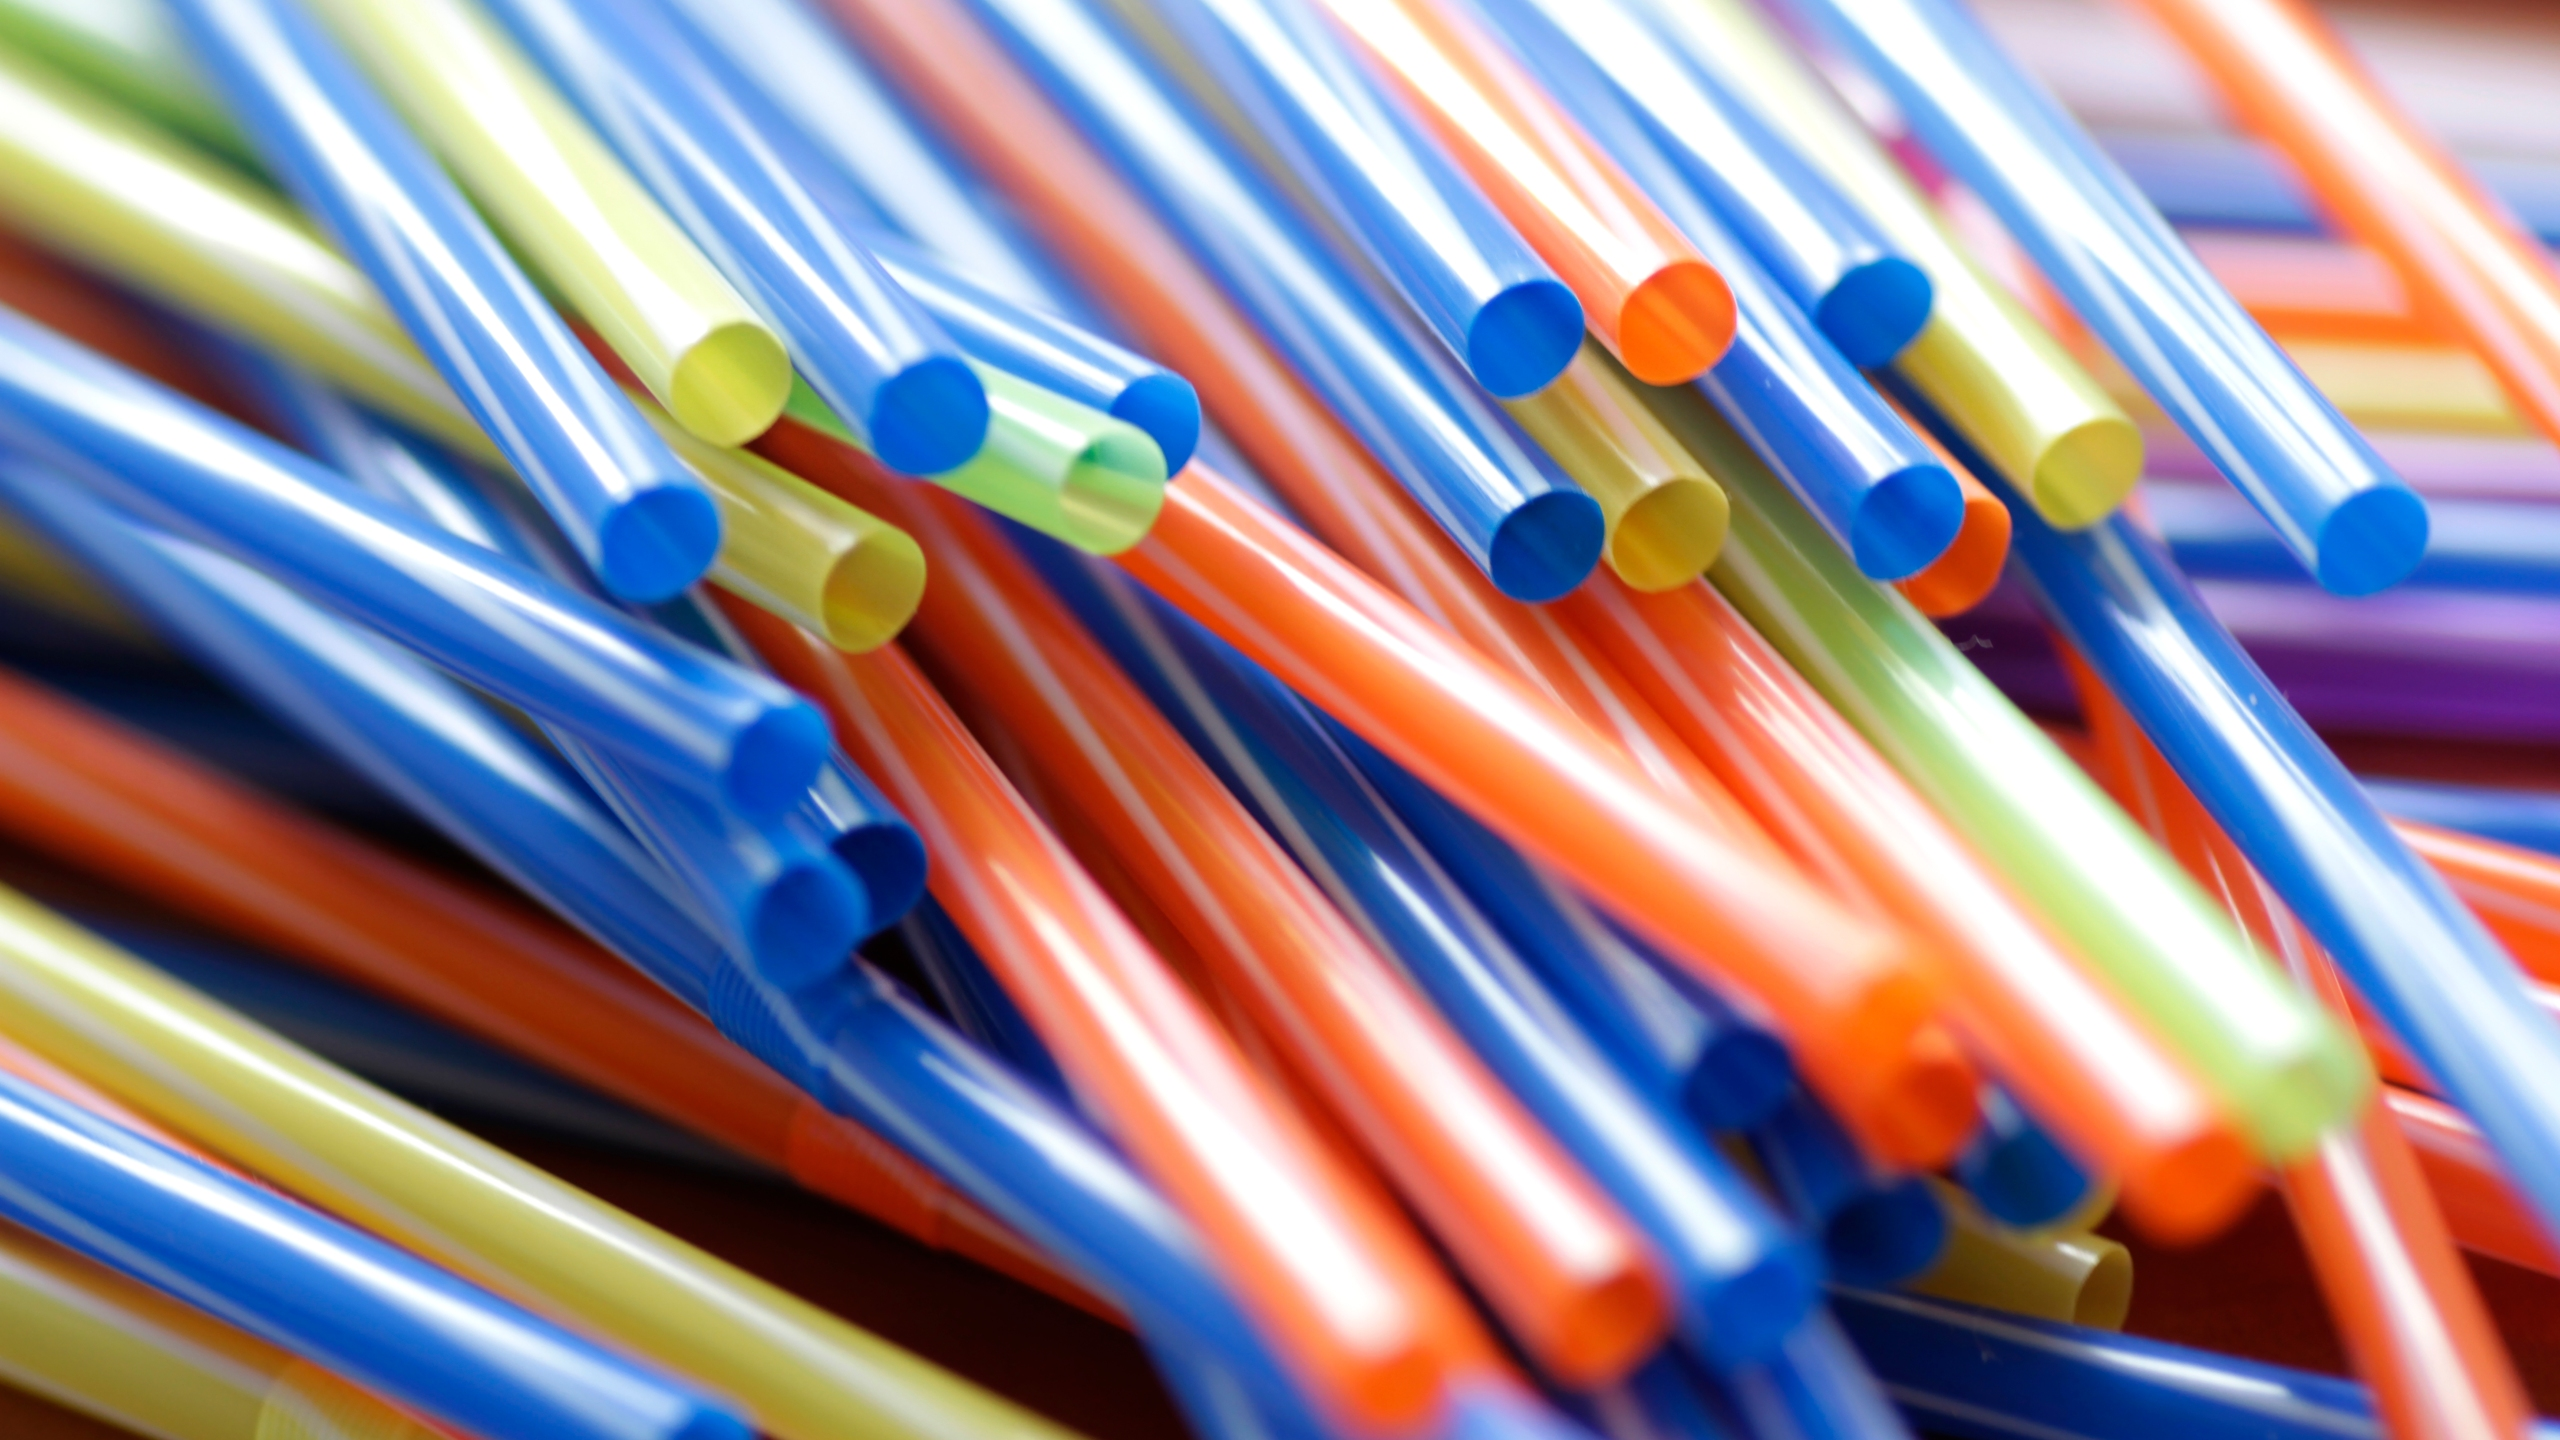 Plastic straws are seen in a file photo. (Credit: iStock / Getty Images Plus)